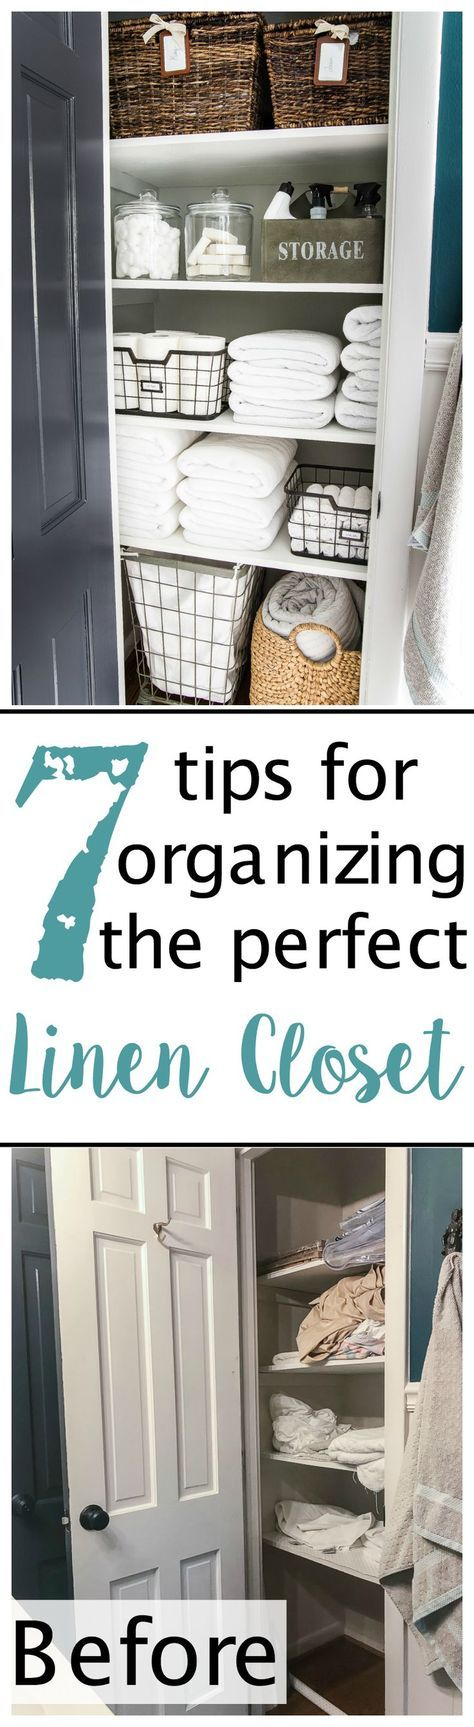 Linen Closet Organization: I like the baskets for TP, rolled up blankets, wash cloths, and storage caddy for cleaning supplies